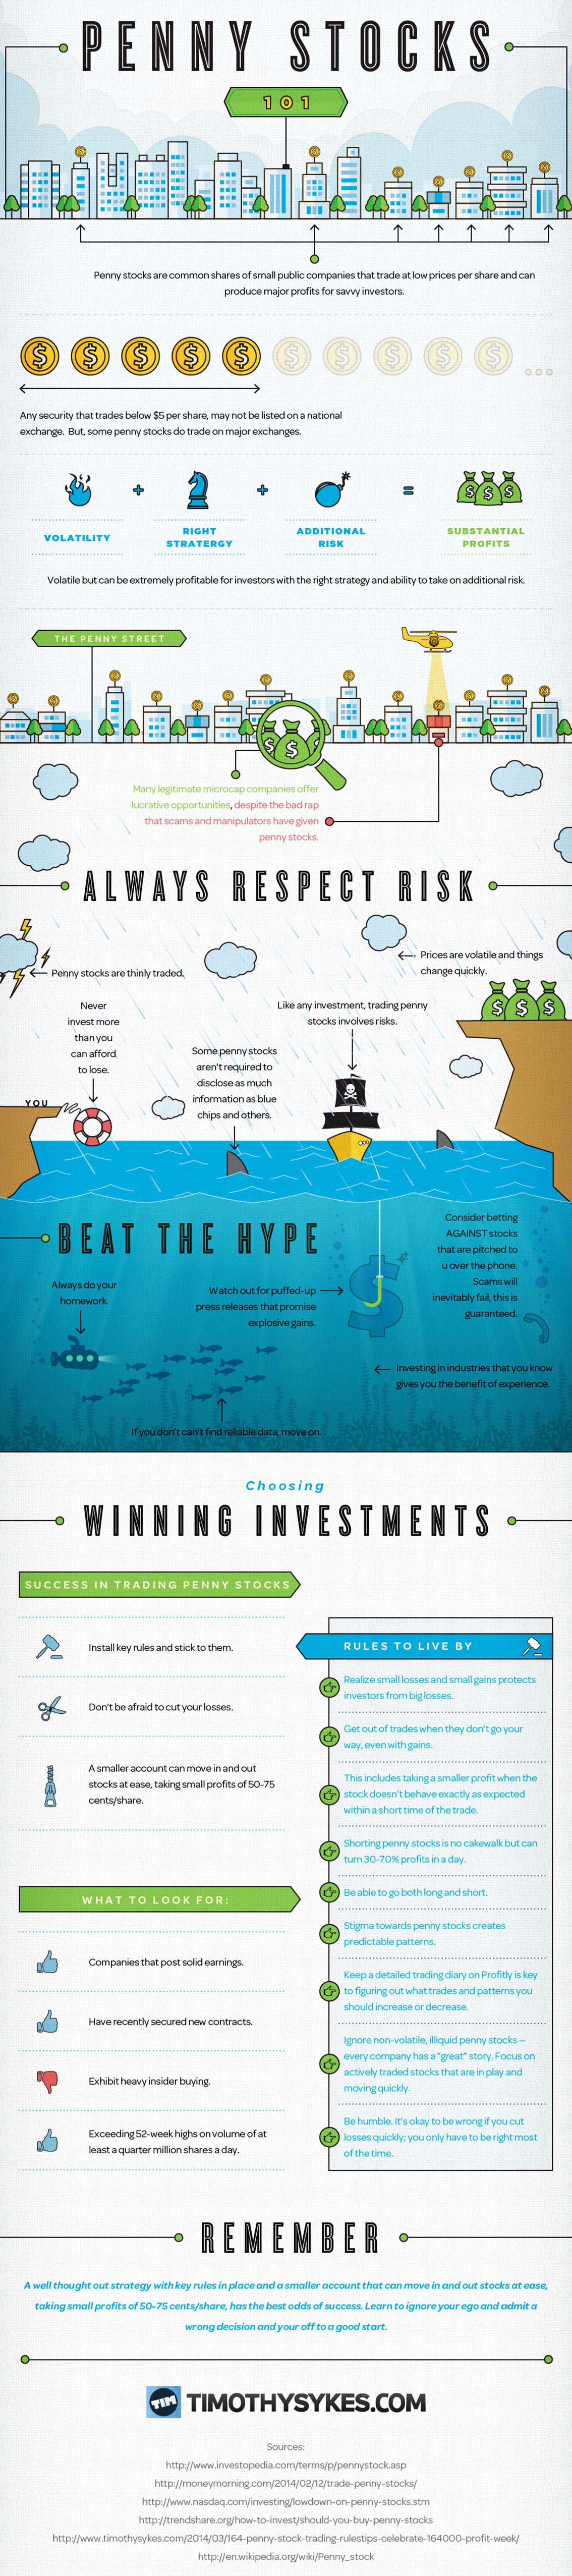 Investing in Penny Stocks for Beginners Infographic